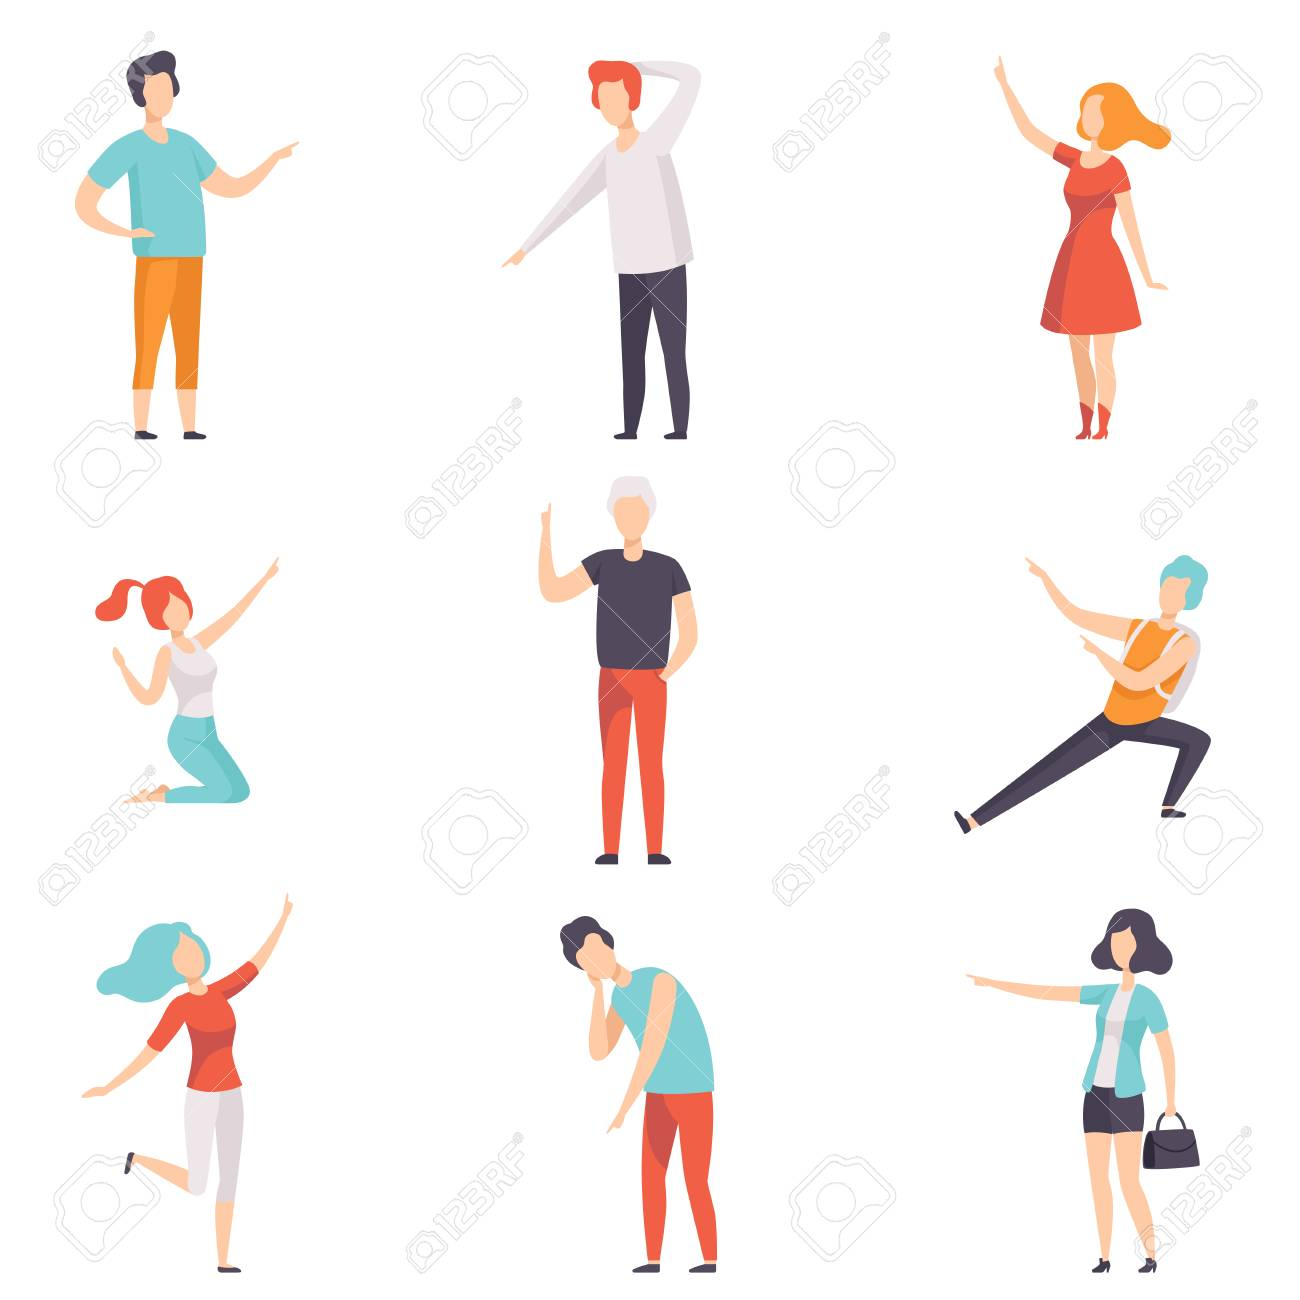 People pointing their finger in different directions set, faceless men and women characters gesturing vector Illustrations isolated on a white background. - 111776030